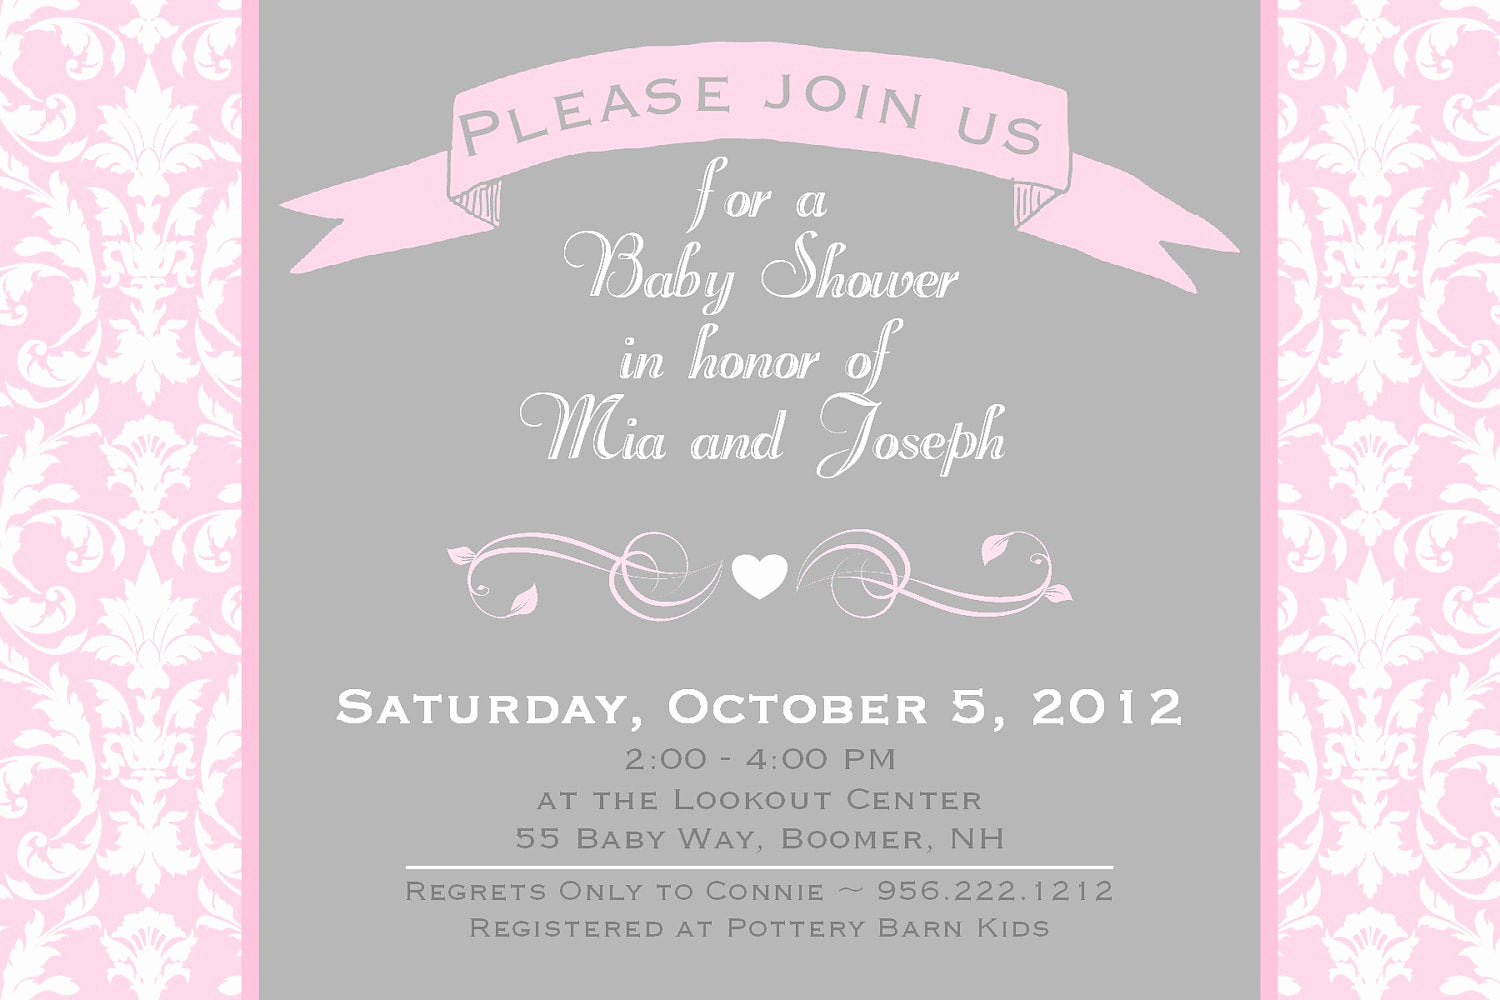 Baby Shower Invitation for Girl Best Of Damask Baby Shower Invitation Girl Invitation Elegant Damask